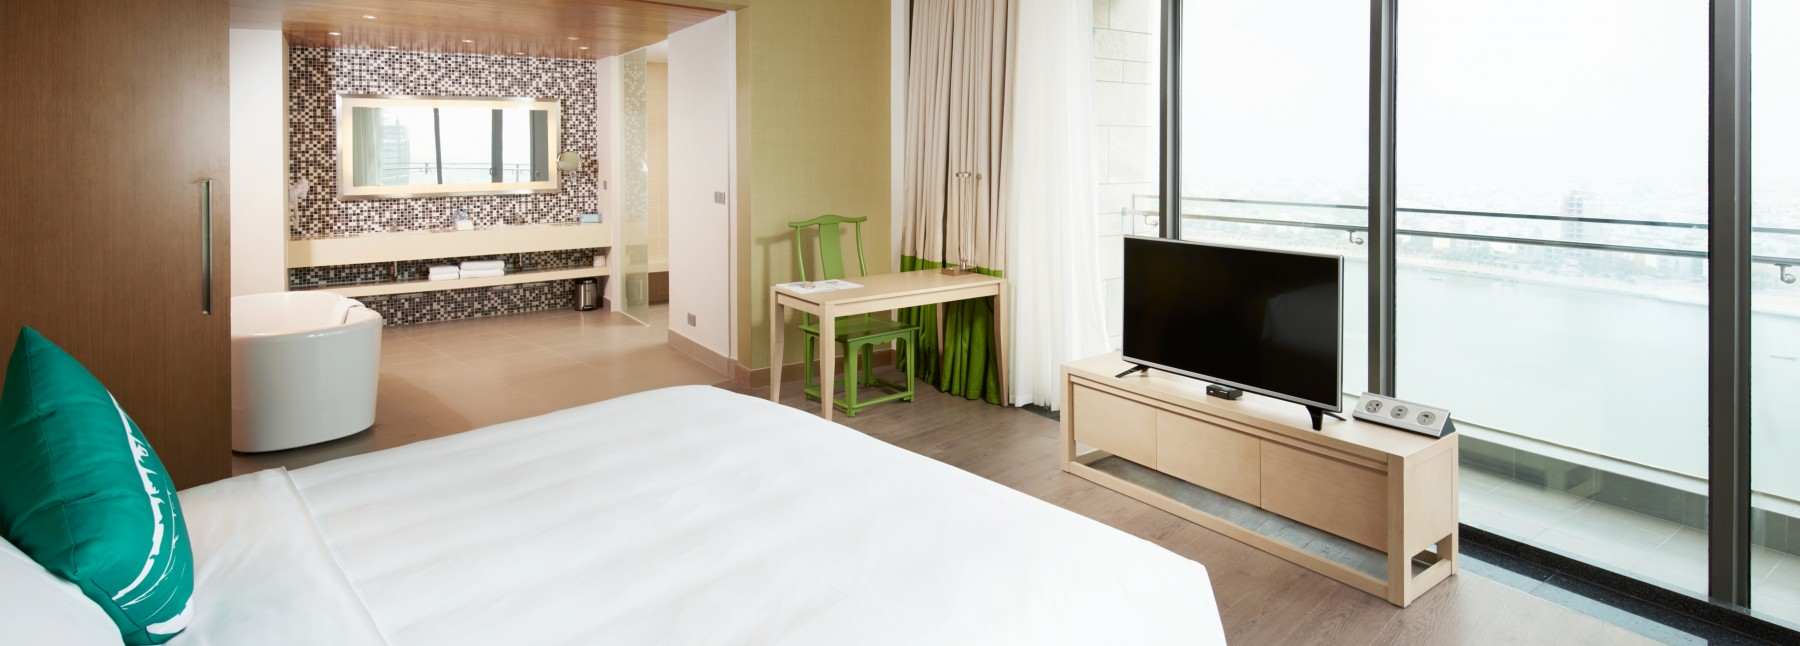 Novotel danang premier han river 3 bedroom apartments for 2 master bedroom apartments